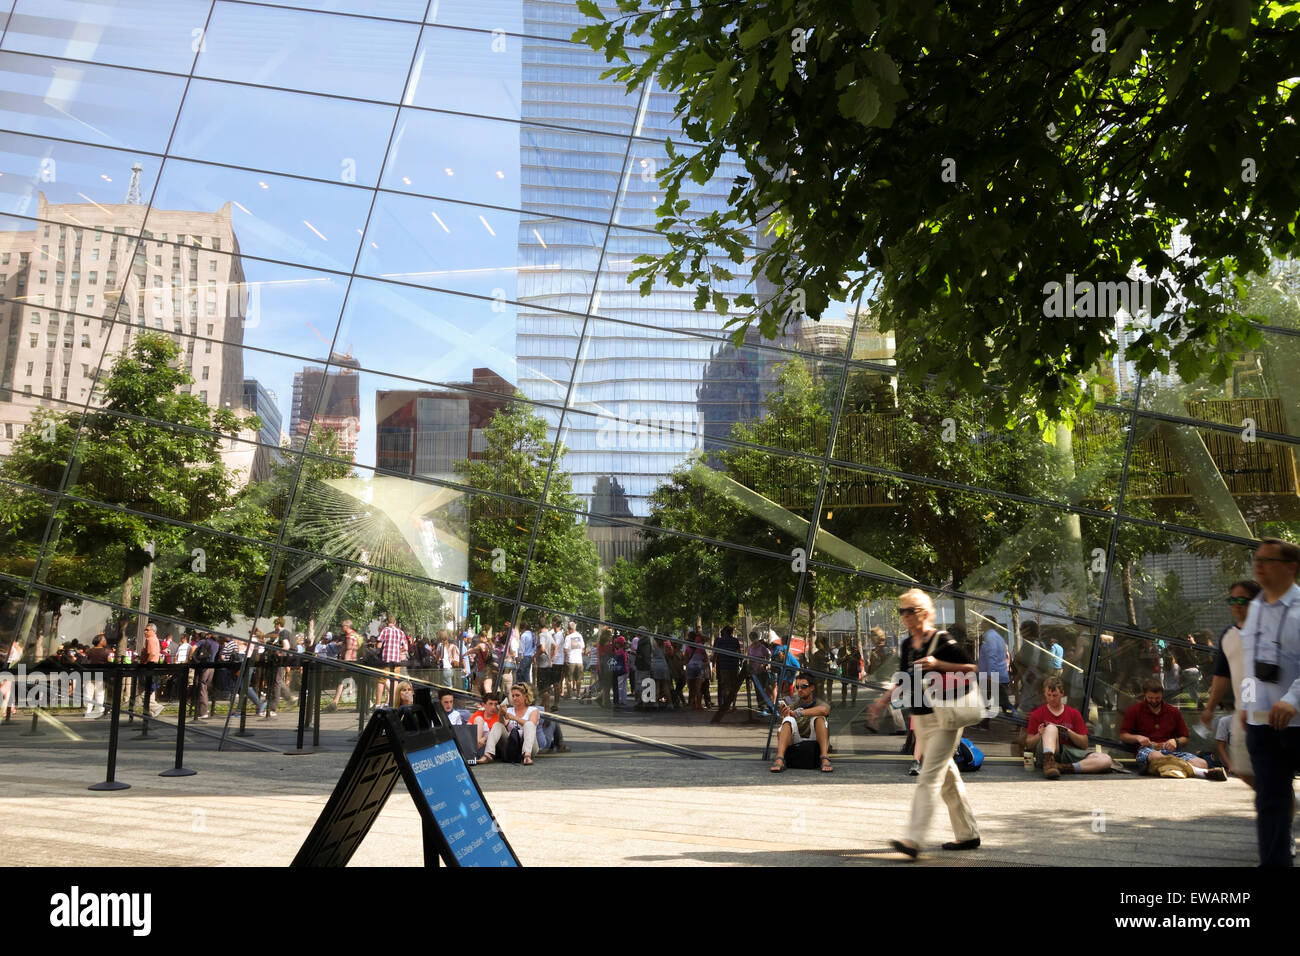 Reflection in glass windows of National September 11 Memorial & Museum, New york City, USA. - Stock Image